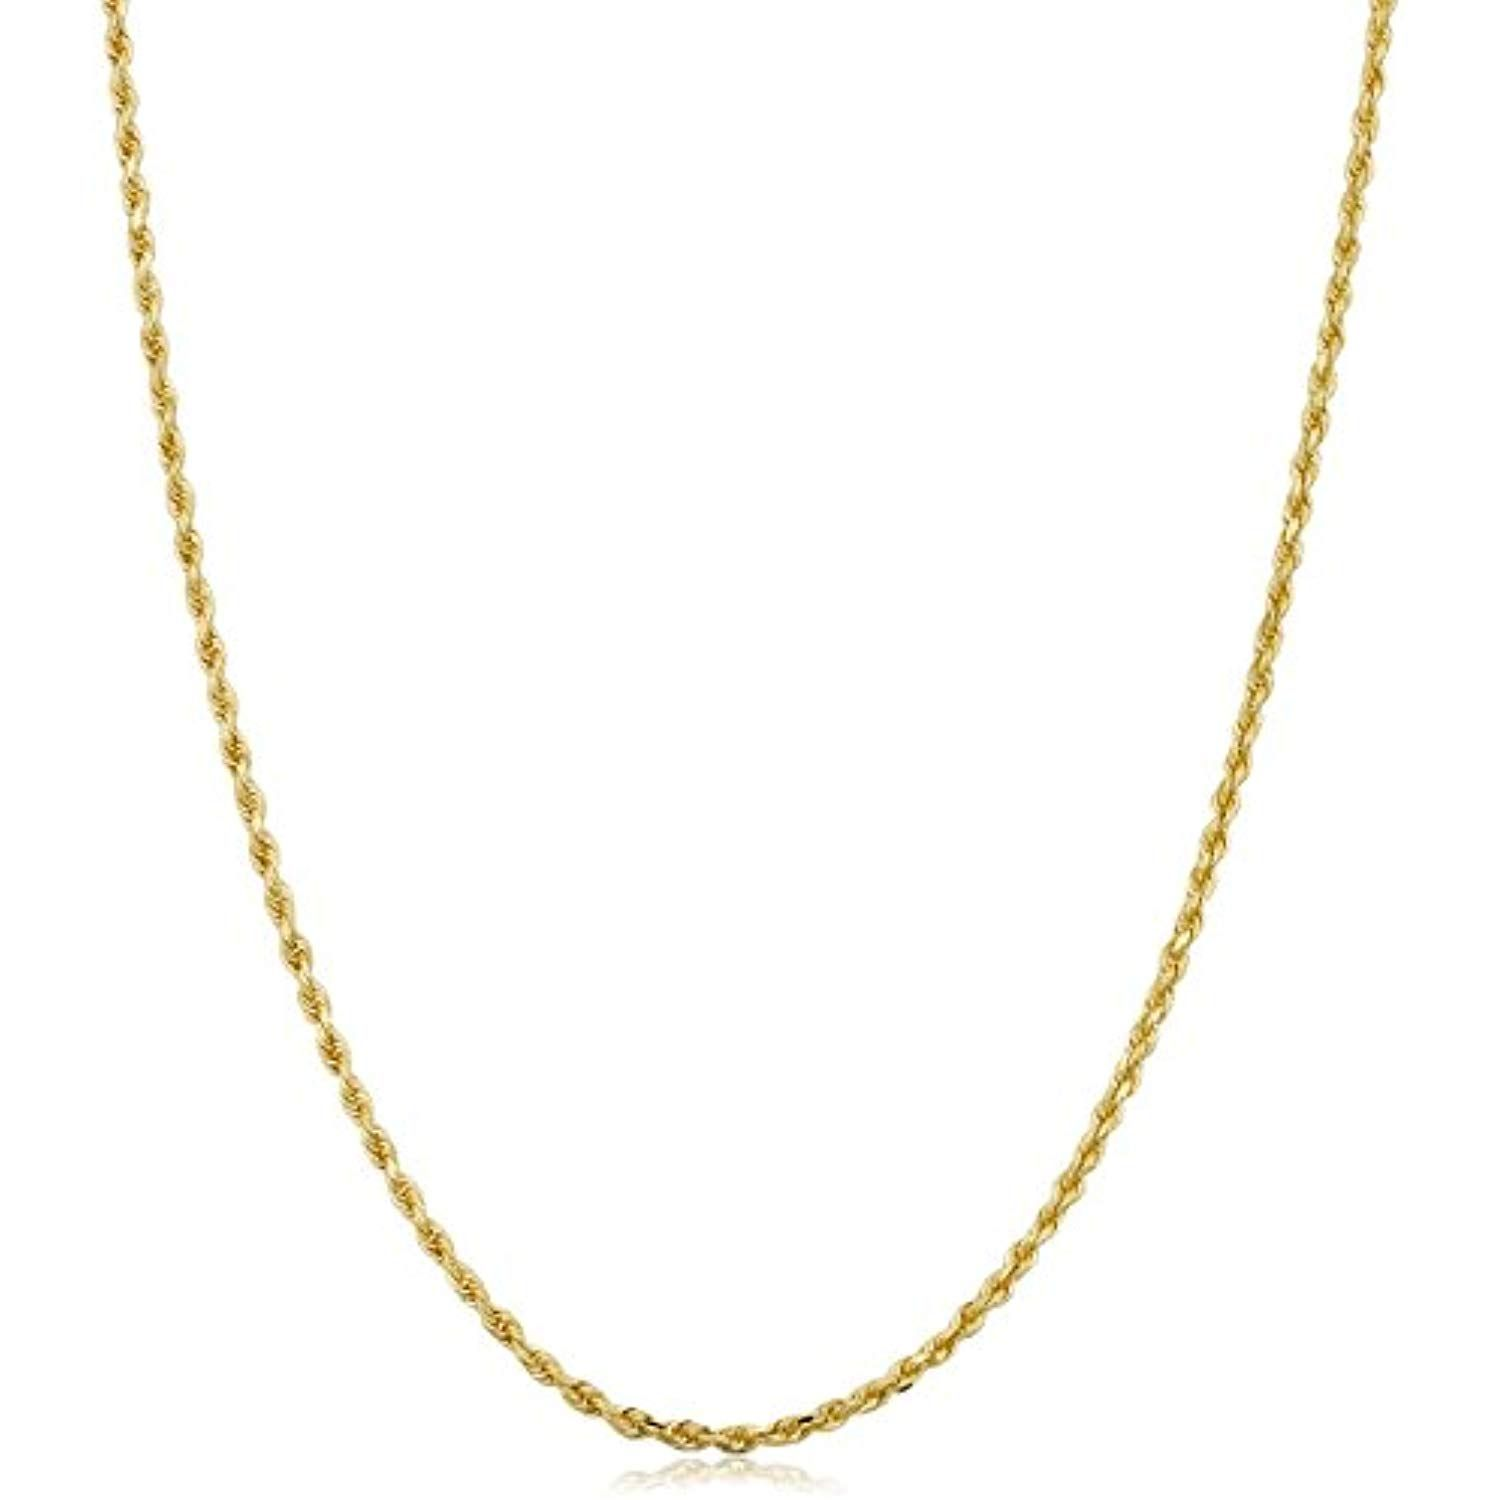 14k Yellow Gold Solid 1 5mm Rope Chain Necklace Read More At The Image Link This Is An Beautiful Gold Chain Gold Necklace Sterling Silver Necklace Diamond